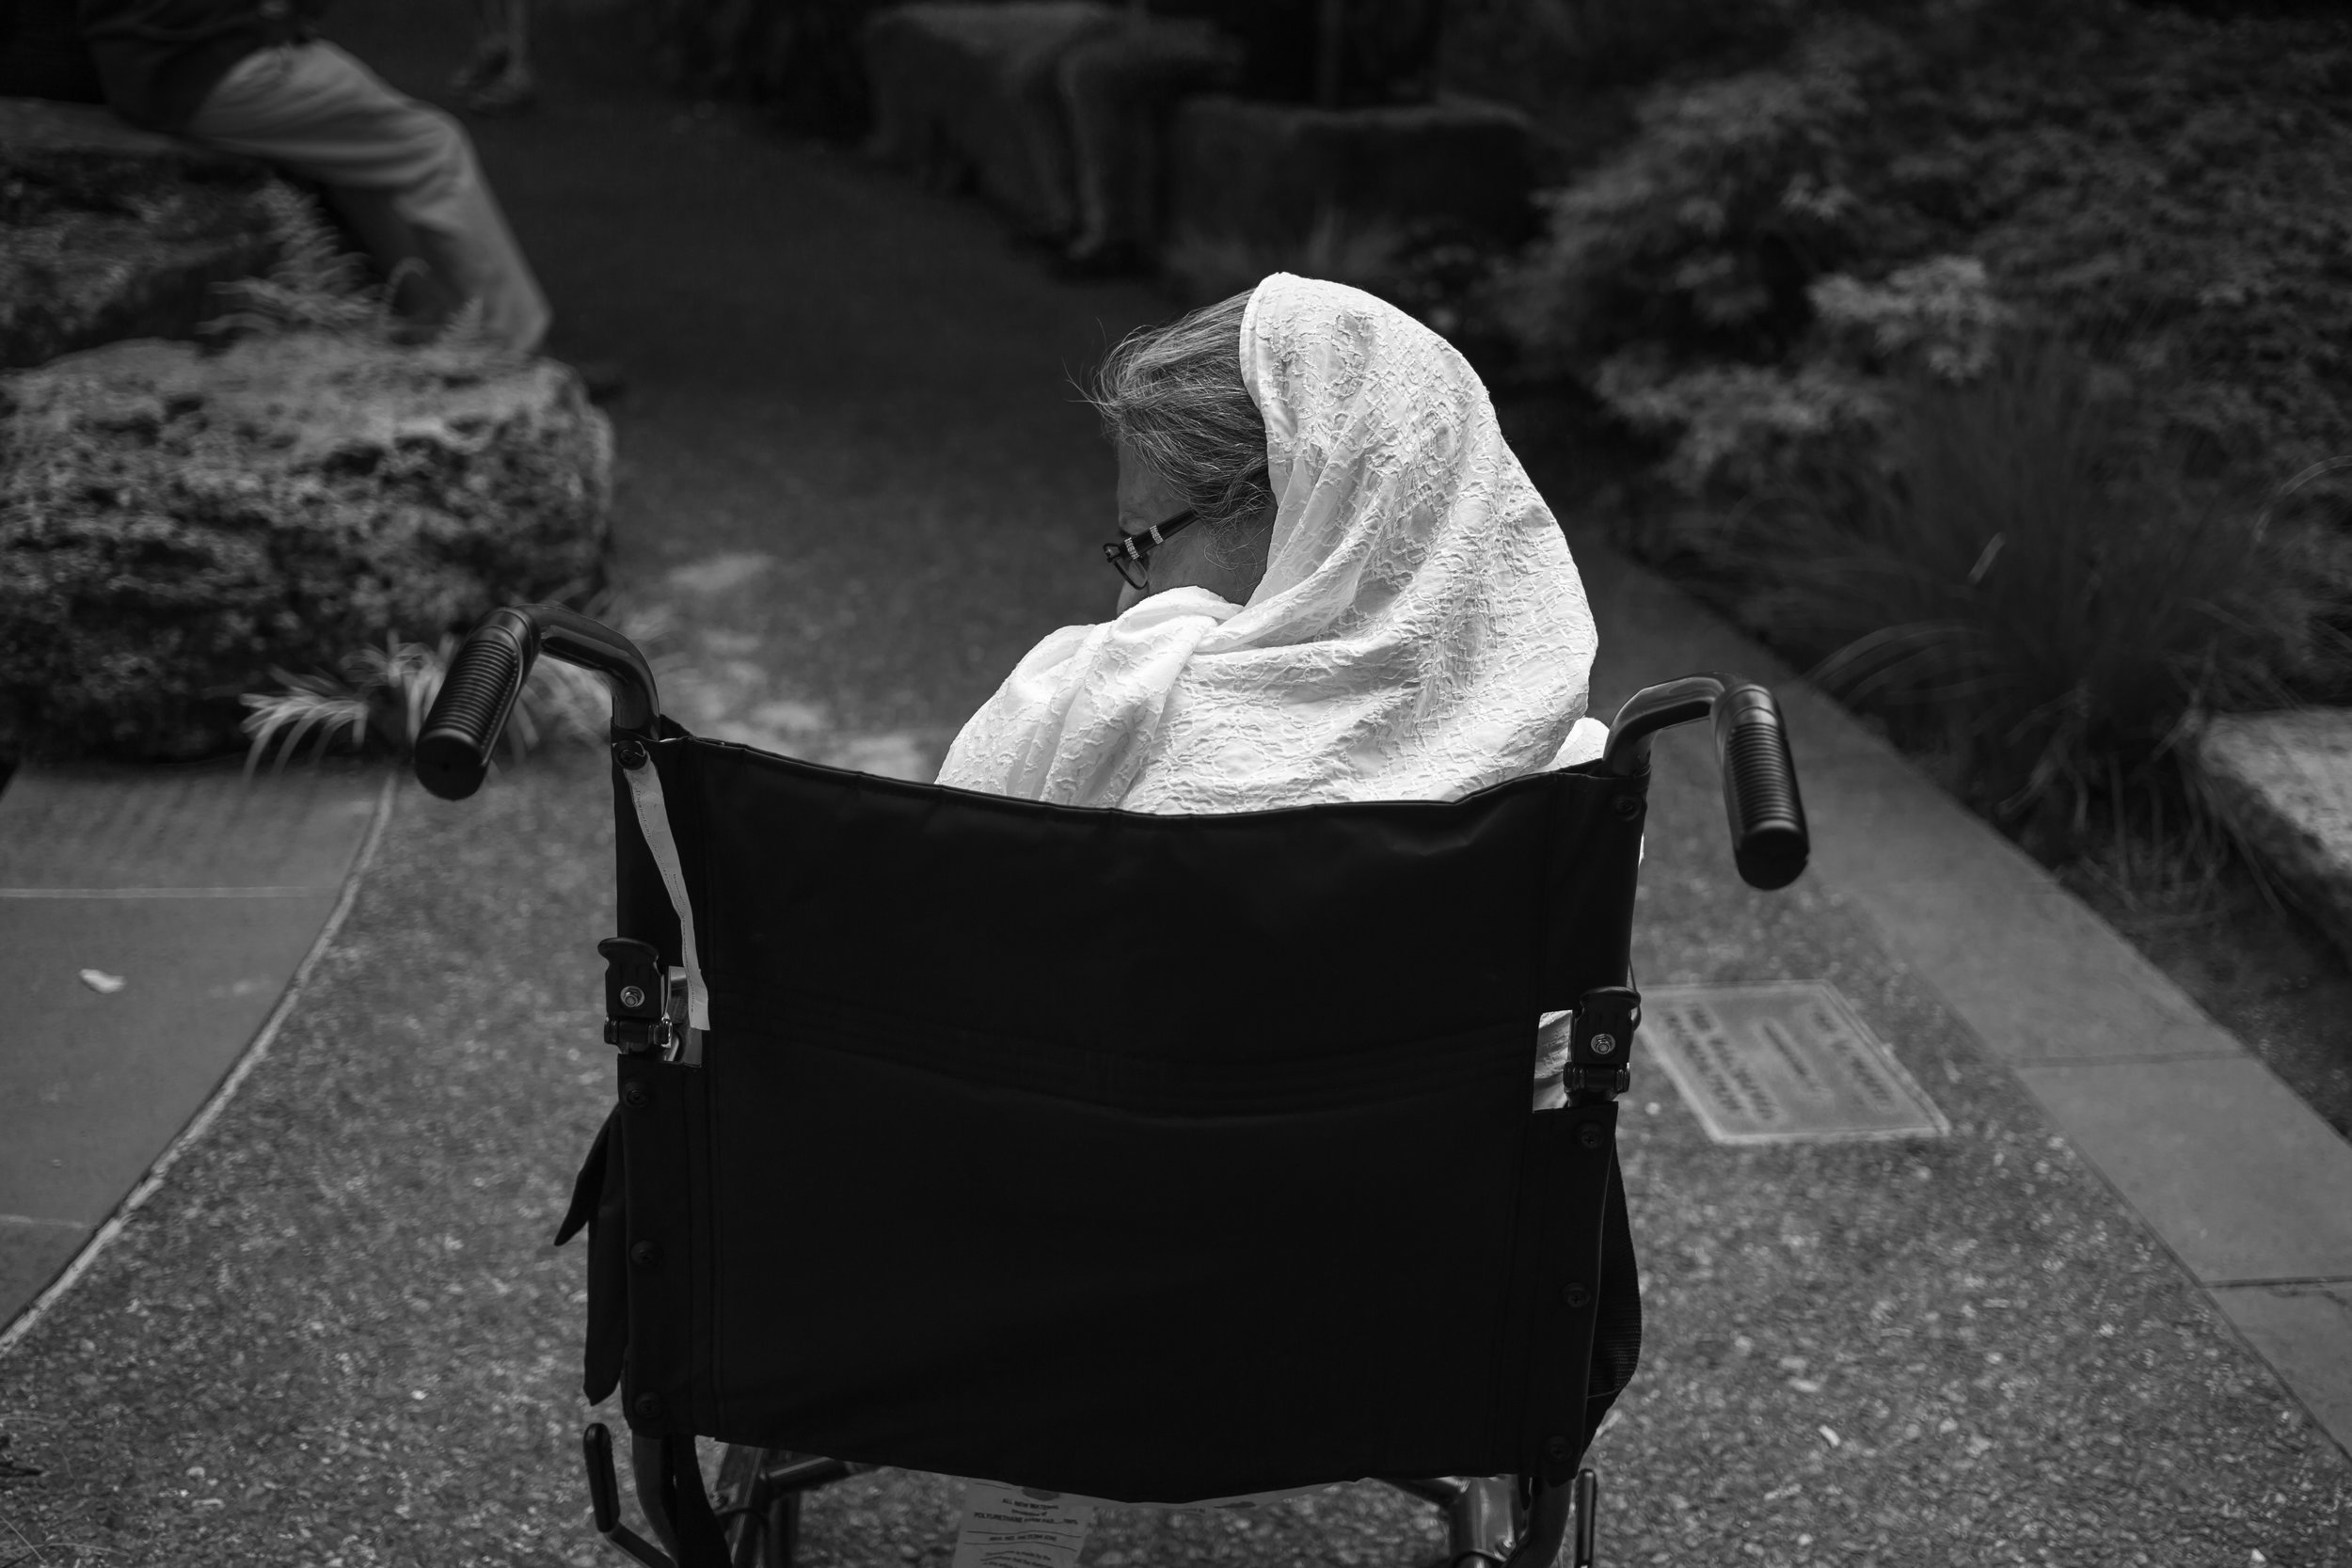 APRIL 28, 2019 | A WOMAN SITS ALONE ON HER WHEELCHAIR, WHILE HER FAMILY TAKES SELFIES AT THE DALLAS ARBORETUM.